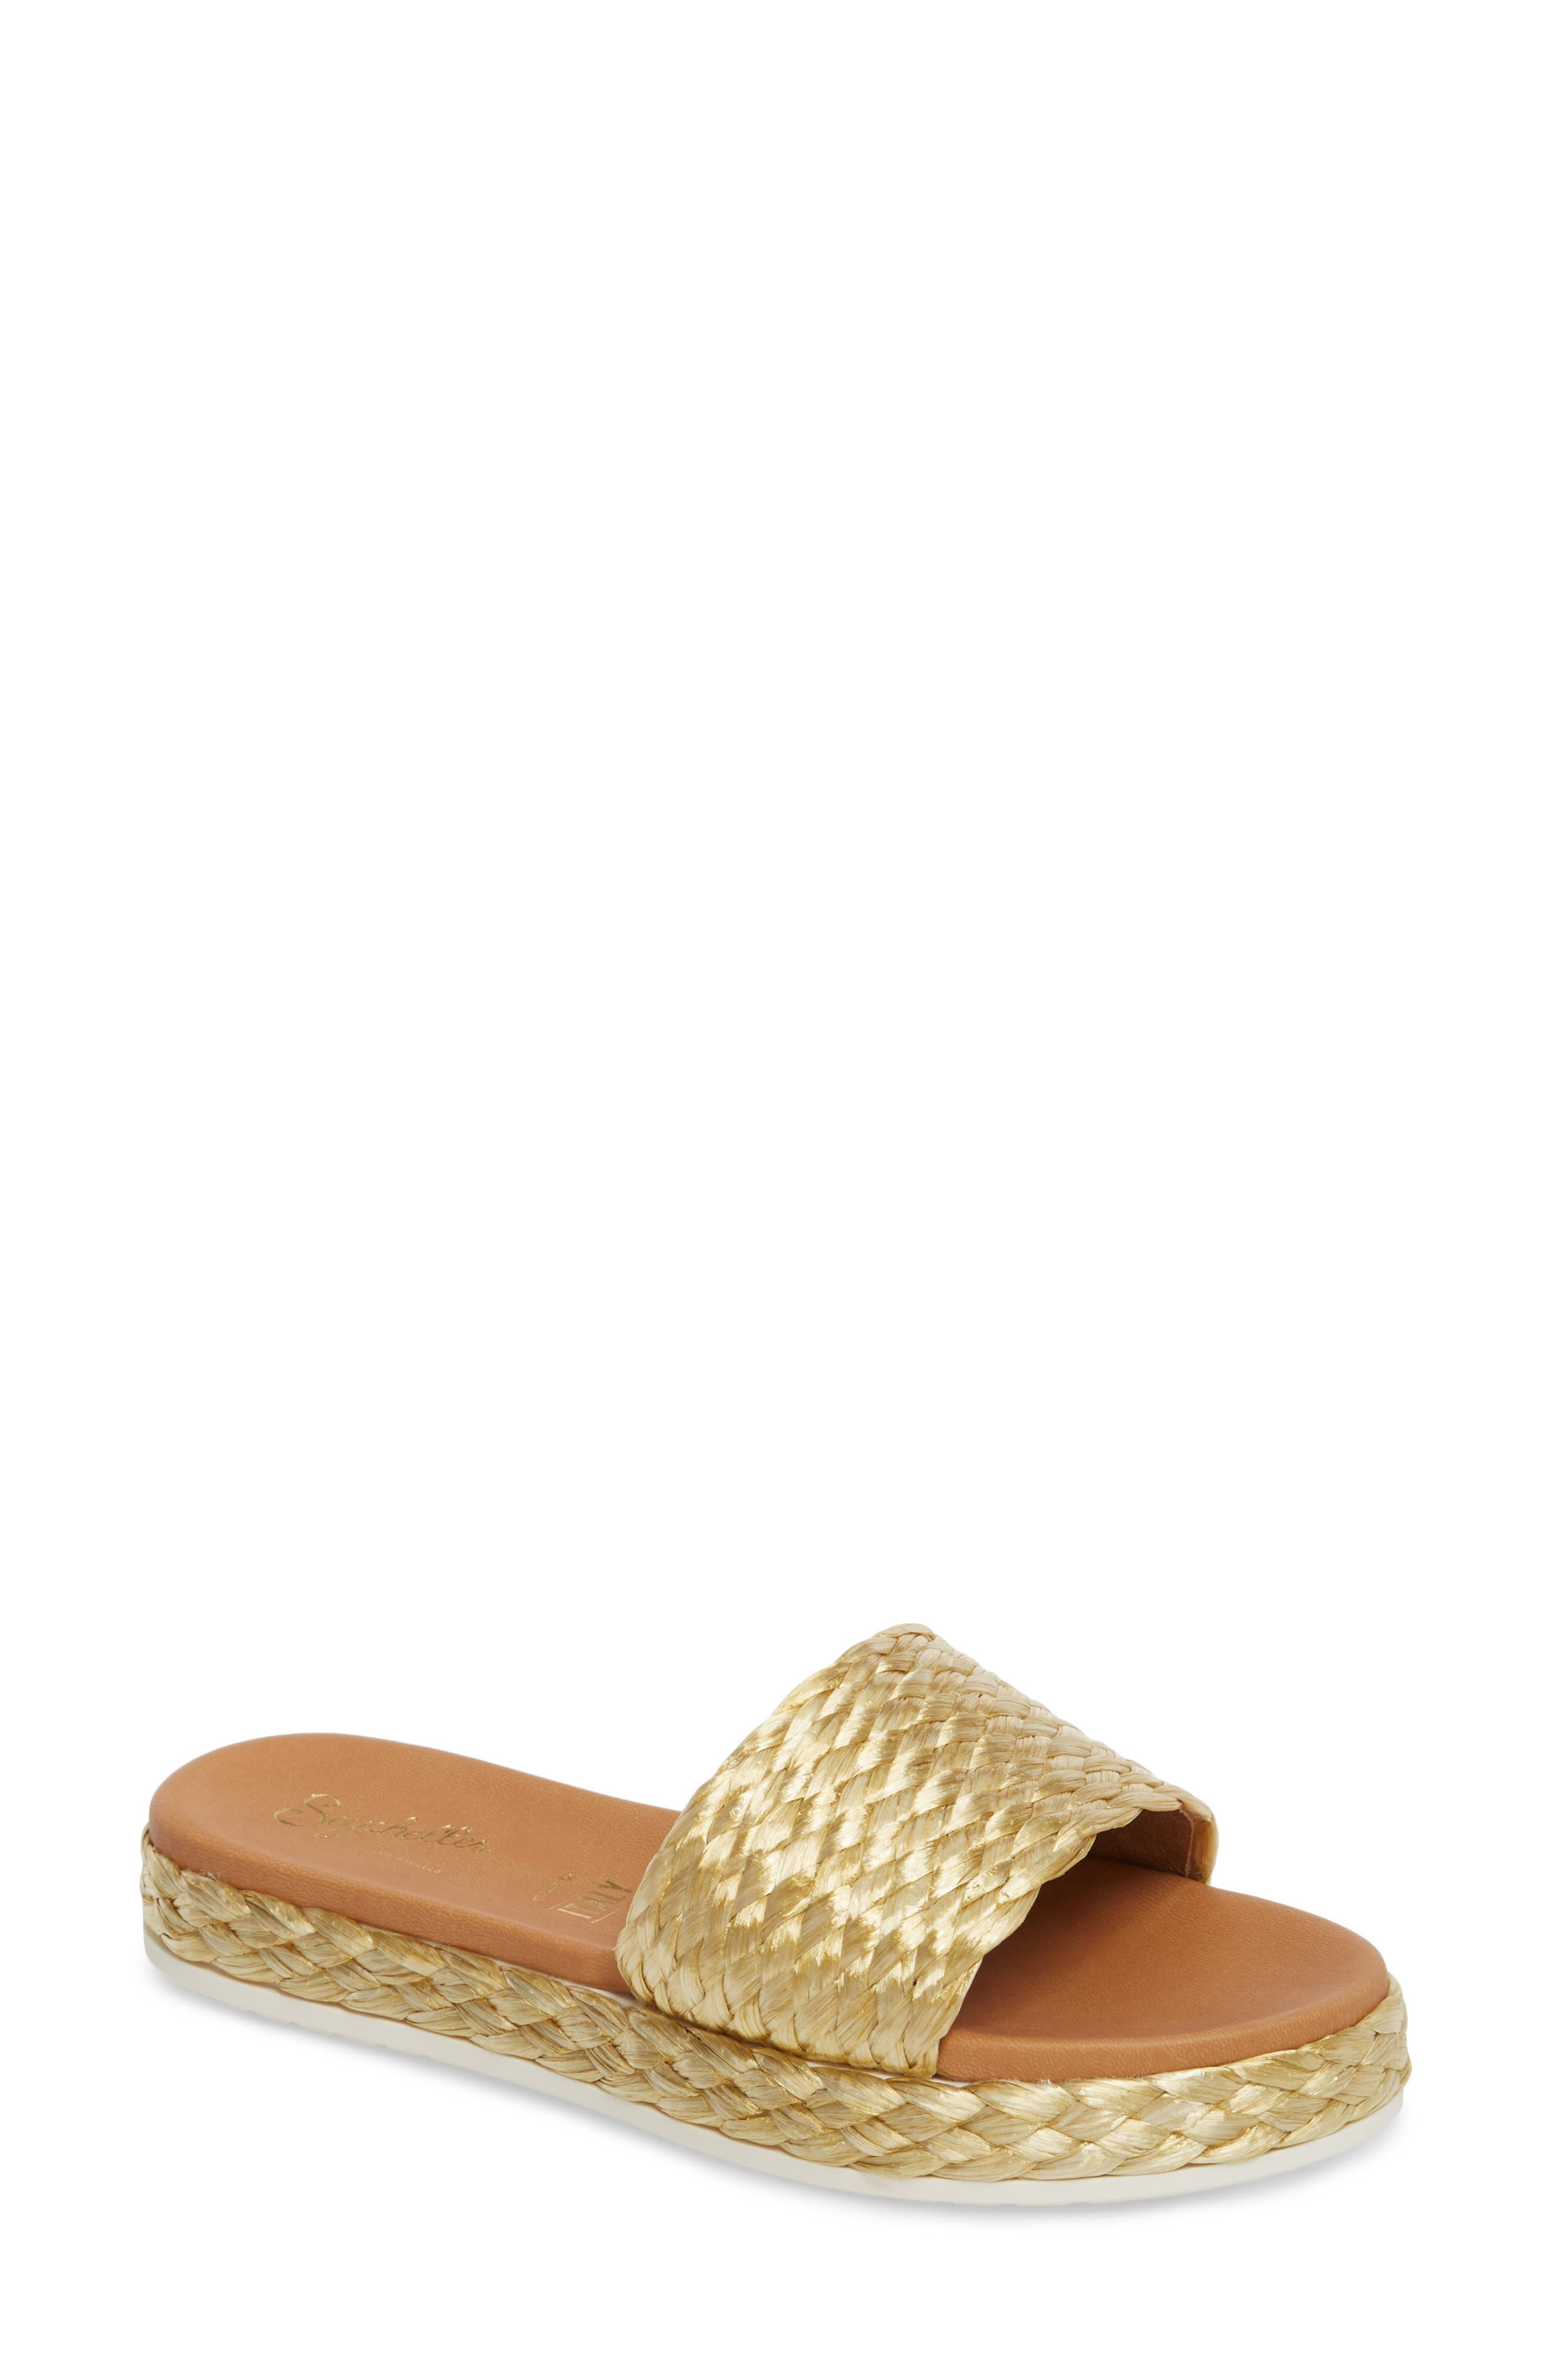 Quiet the Mind Slide Sandal,                             Main thumbnail 1, color,                             Yellow Fabric